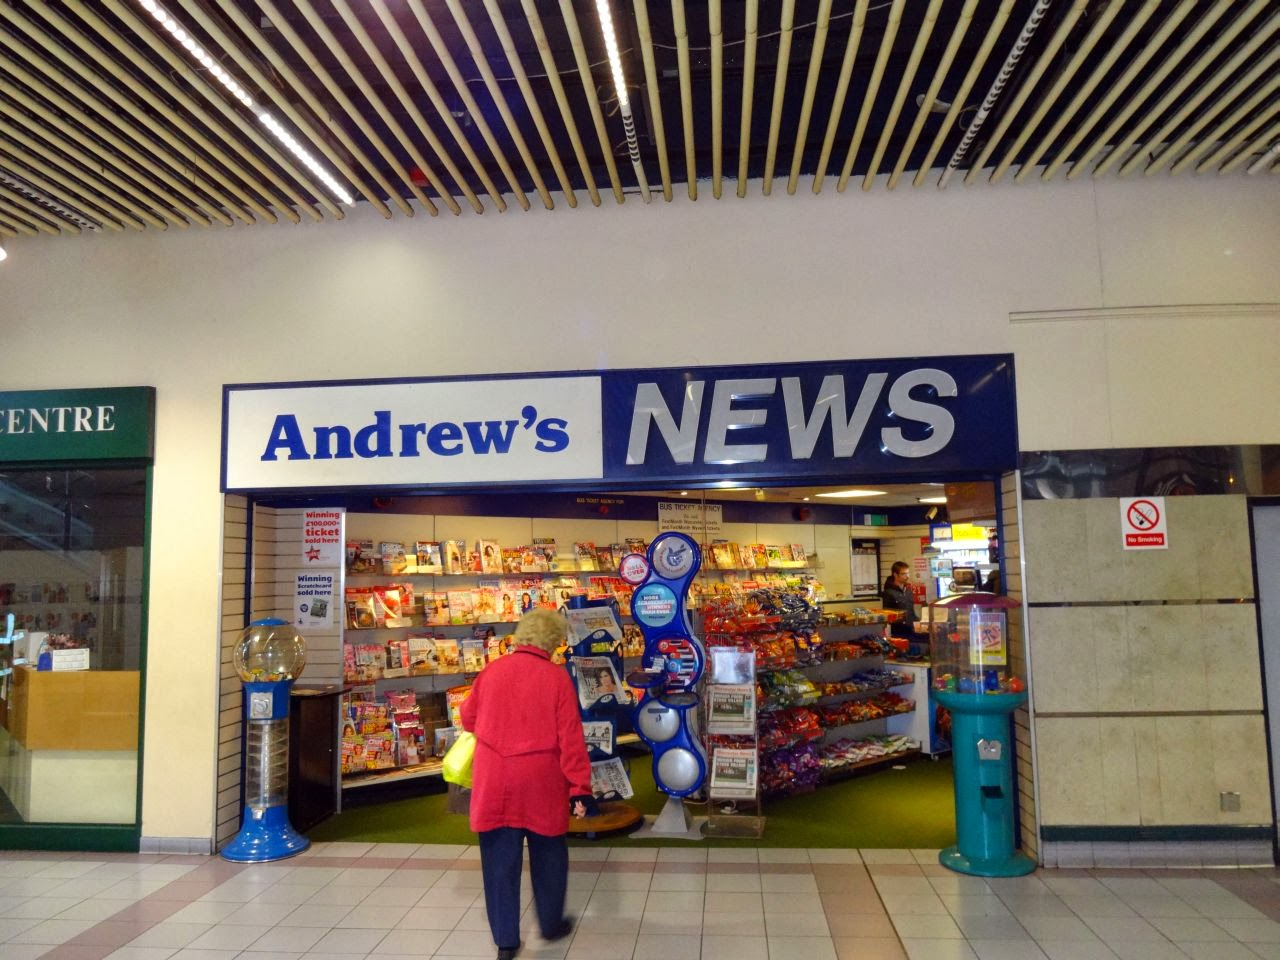 Andrews News at Worcester Bus Station